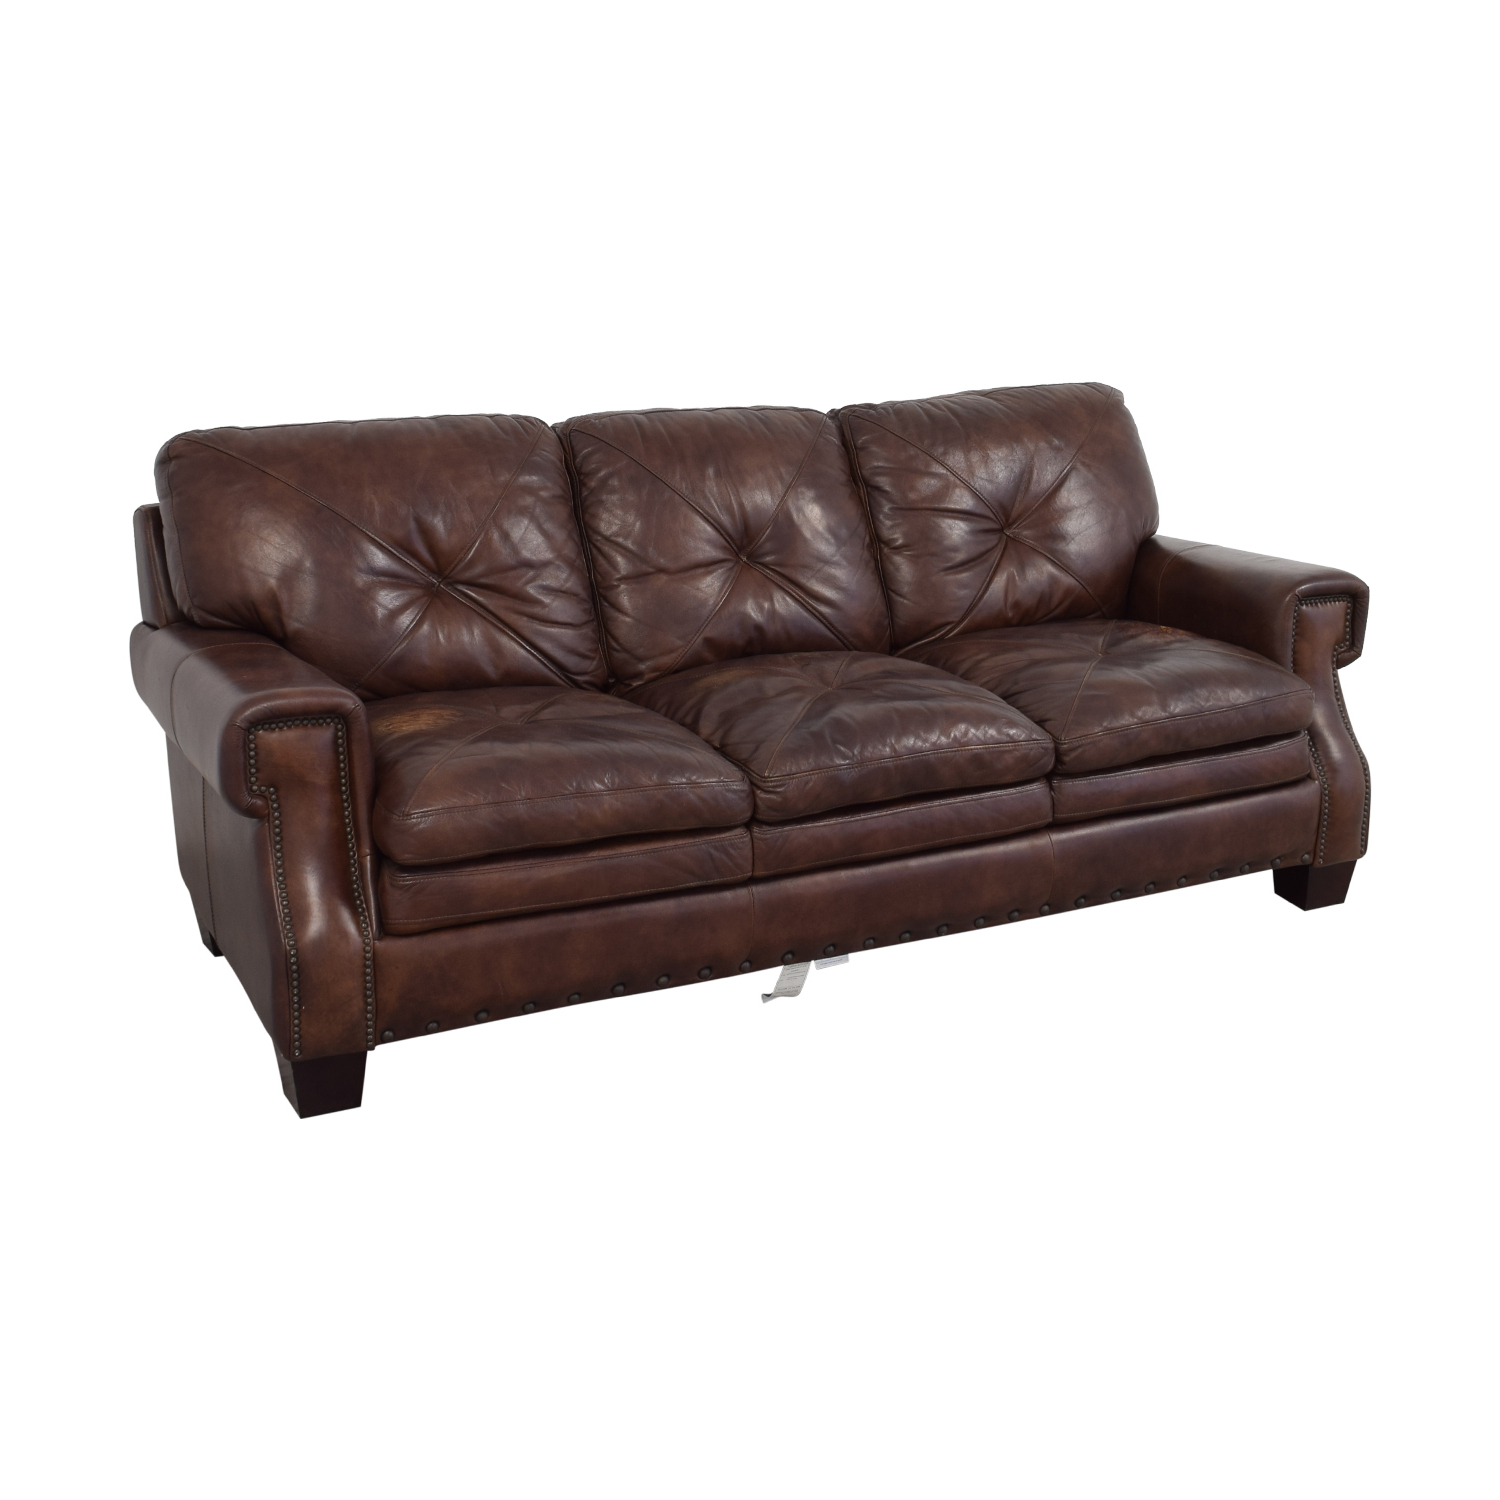 Trailblazer Gray Leather Power Reclining Sofas With Regard To Most Recently Released Bobs Furniture Leather Sofa : Trailblazer Gray Leather (View 5 of 15)